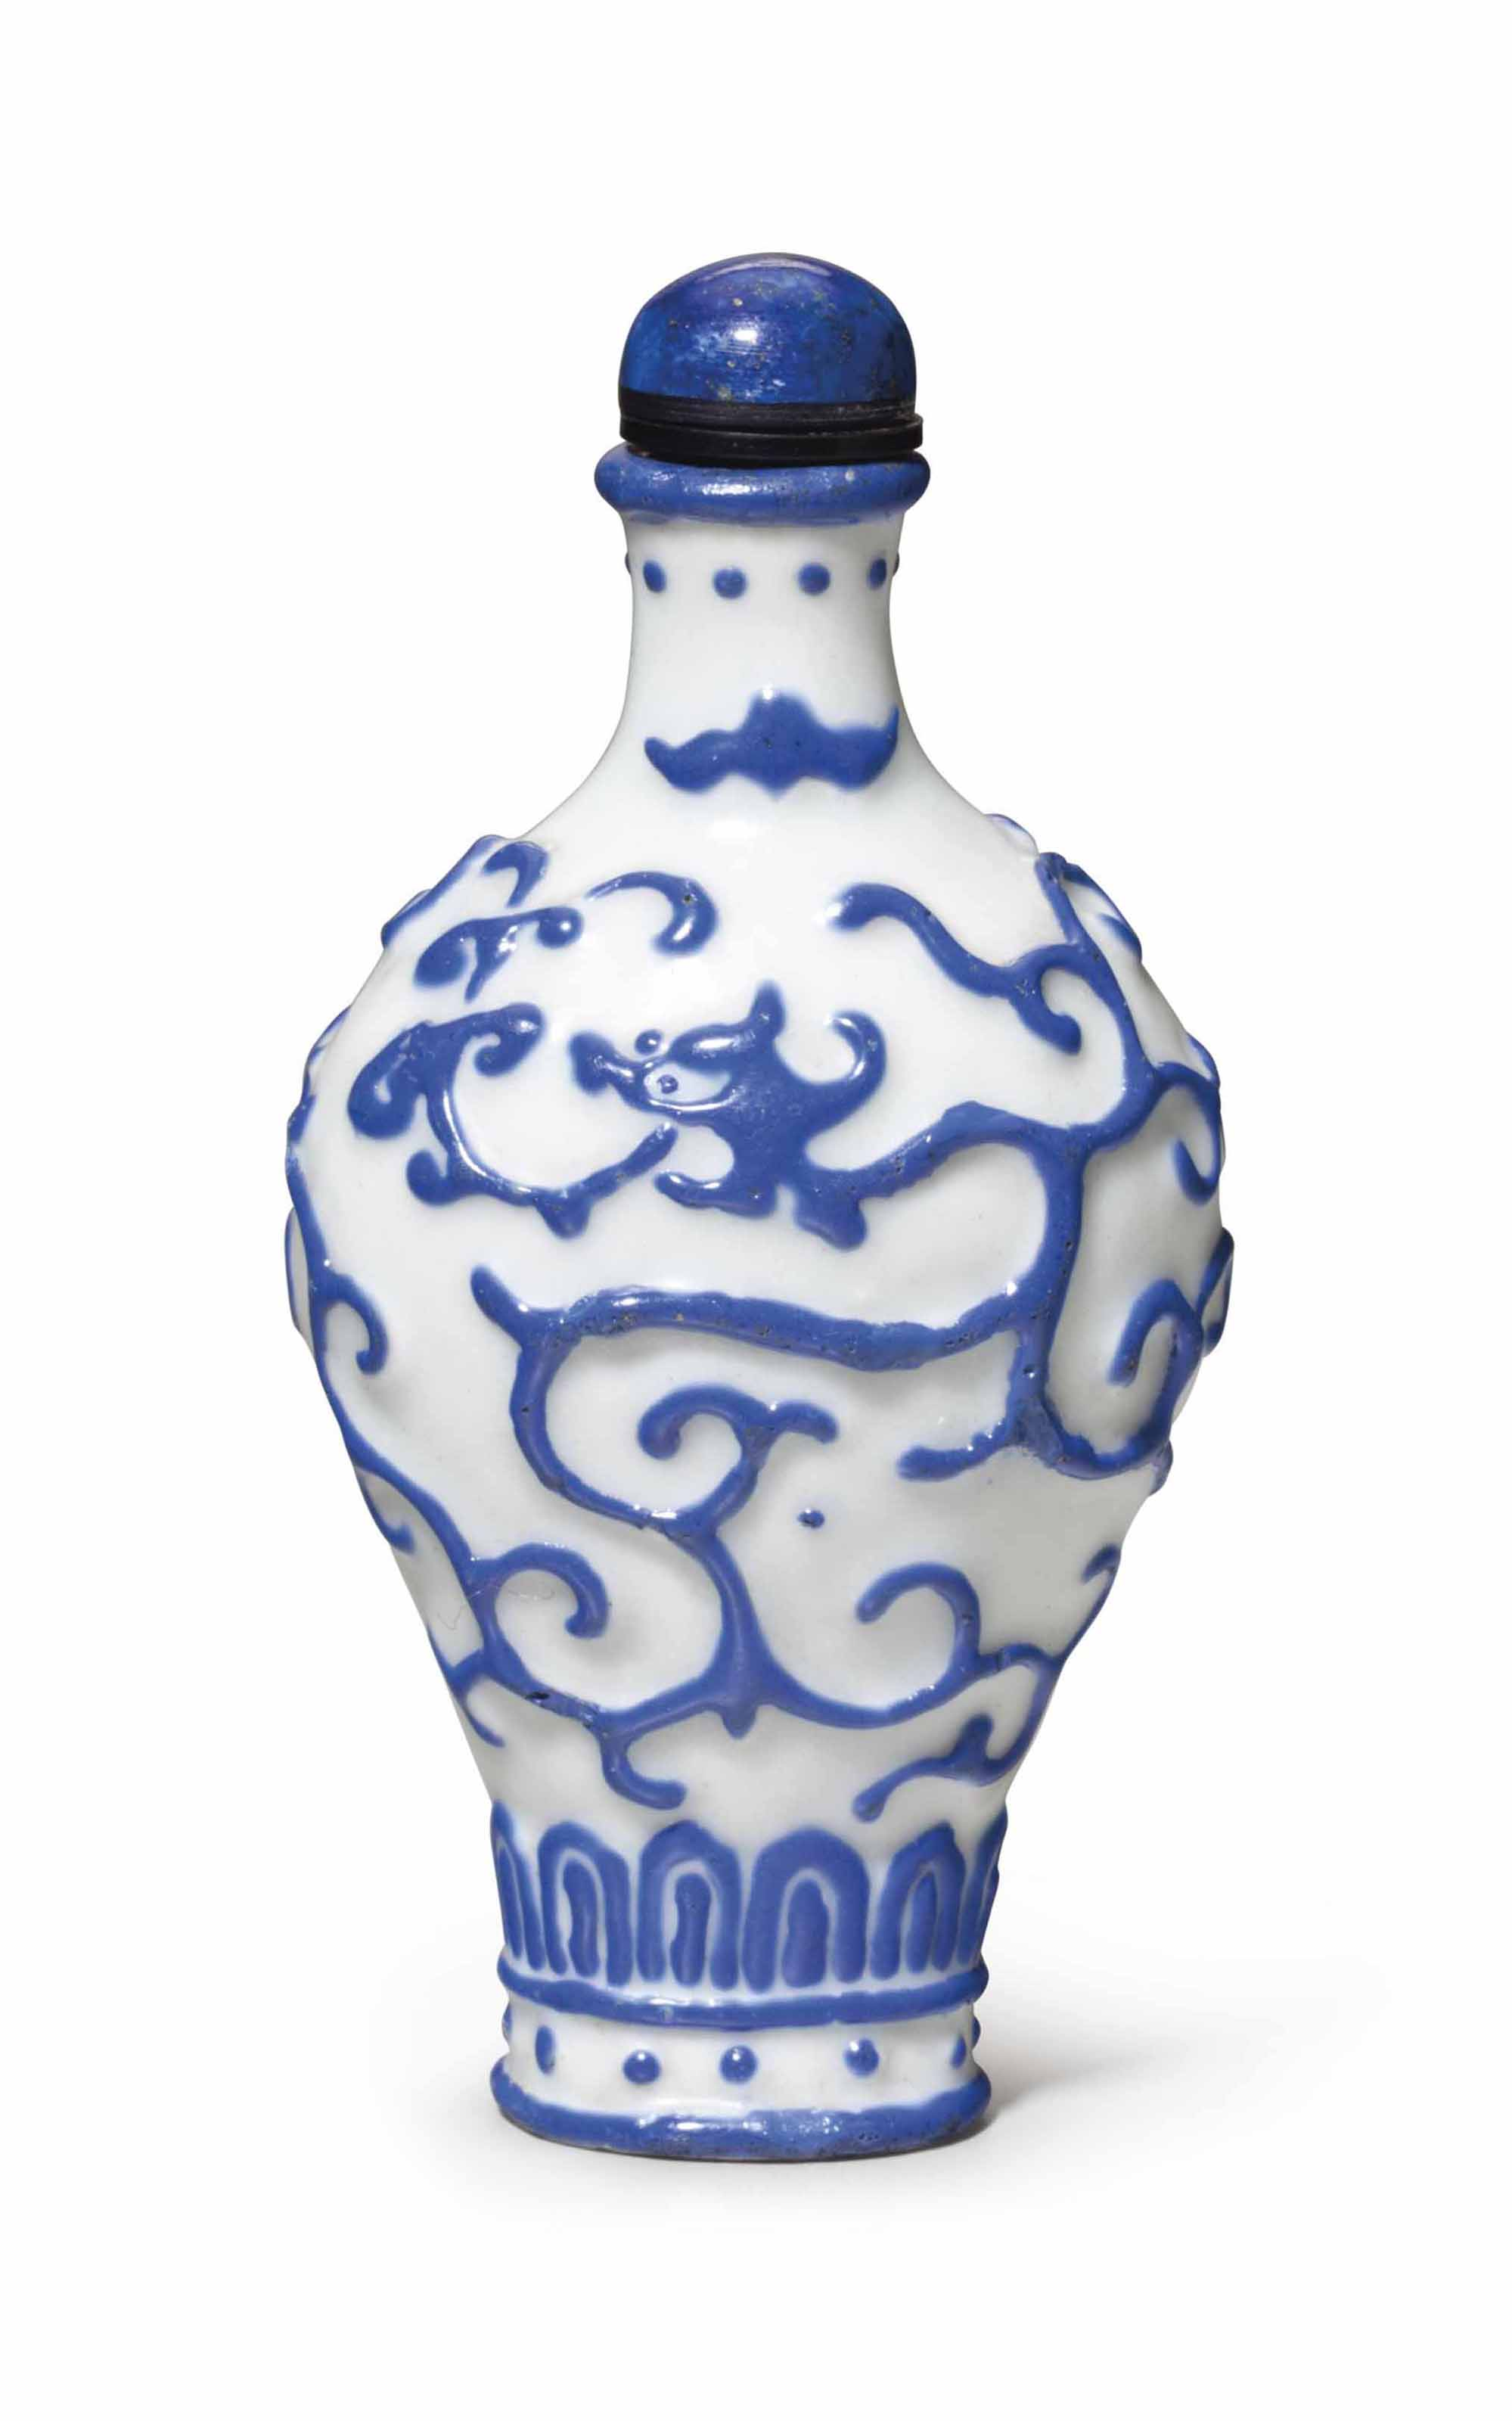 A BLUE AND WHITE-ENAMELED MOLD